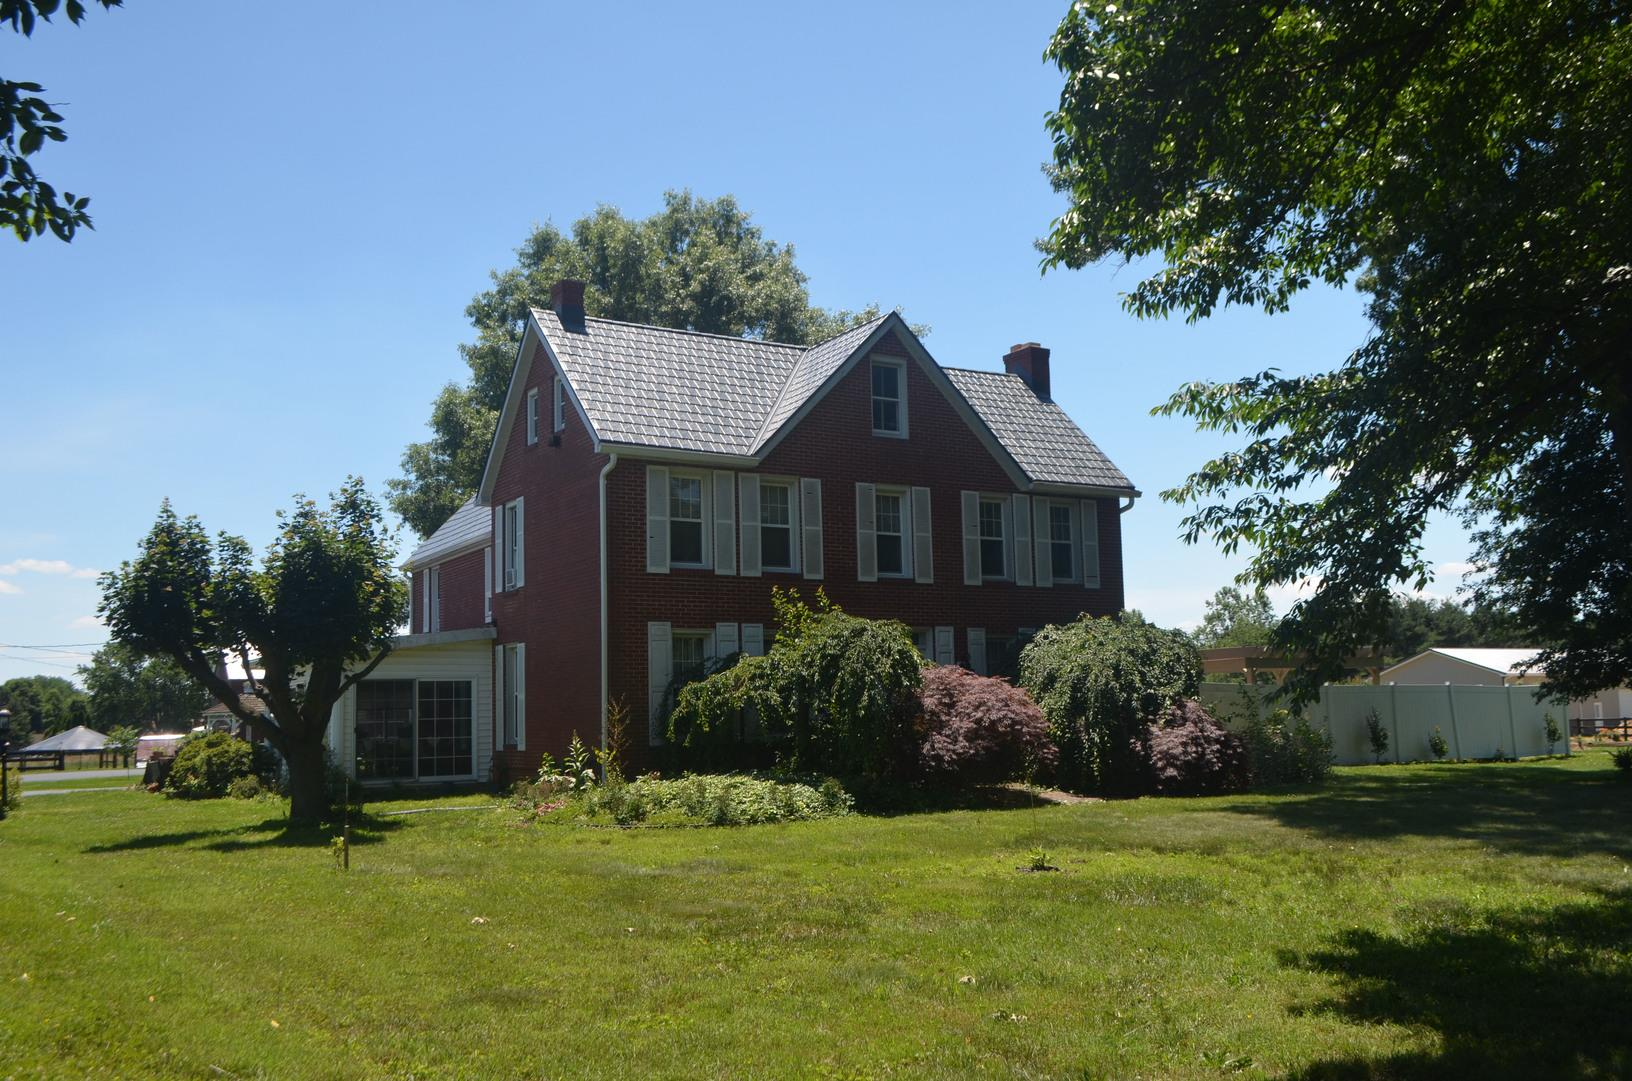 Stone Blend Metal Slate Roof Installation on Historic Home in Middletown, DE - After Photo